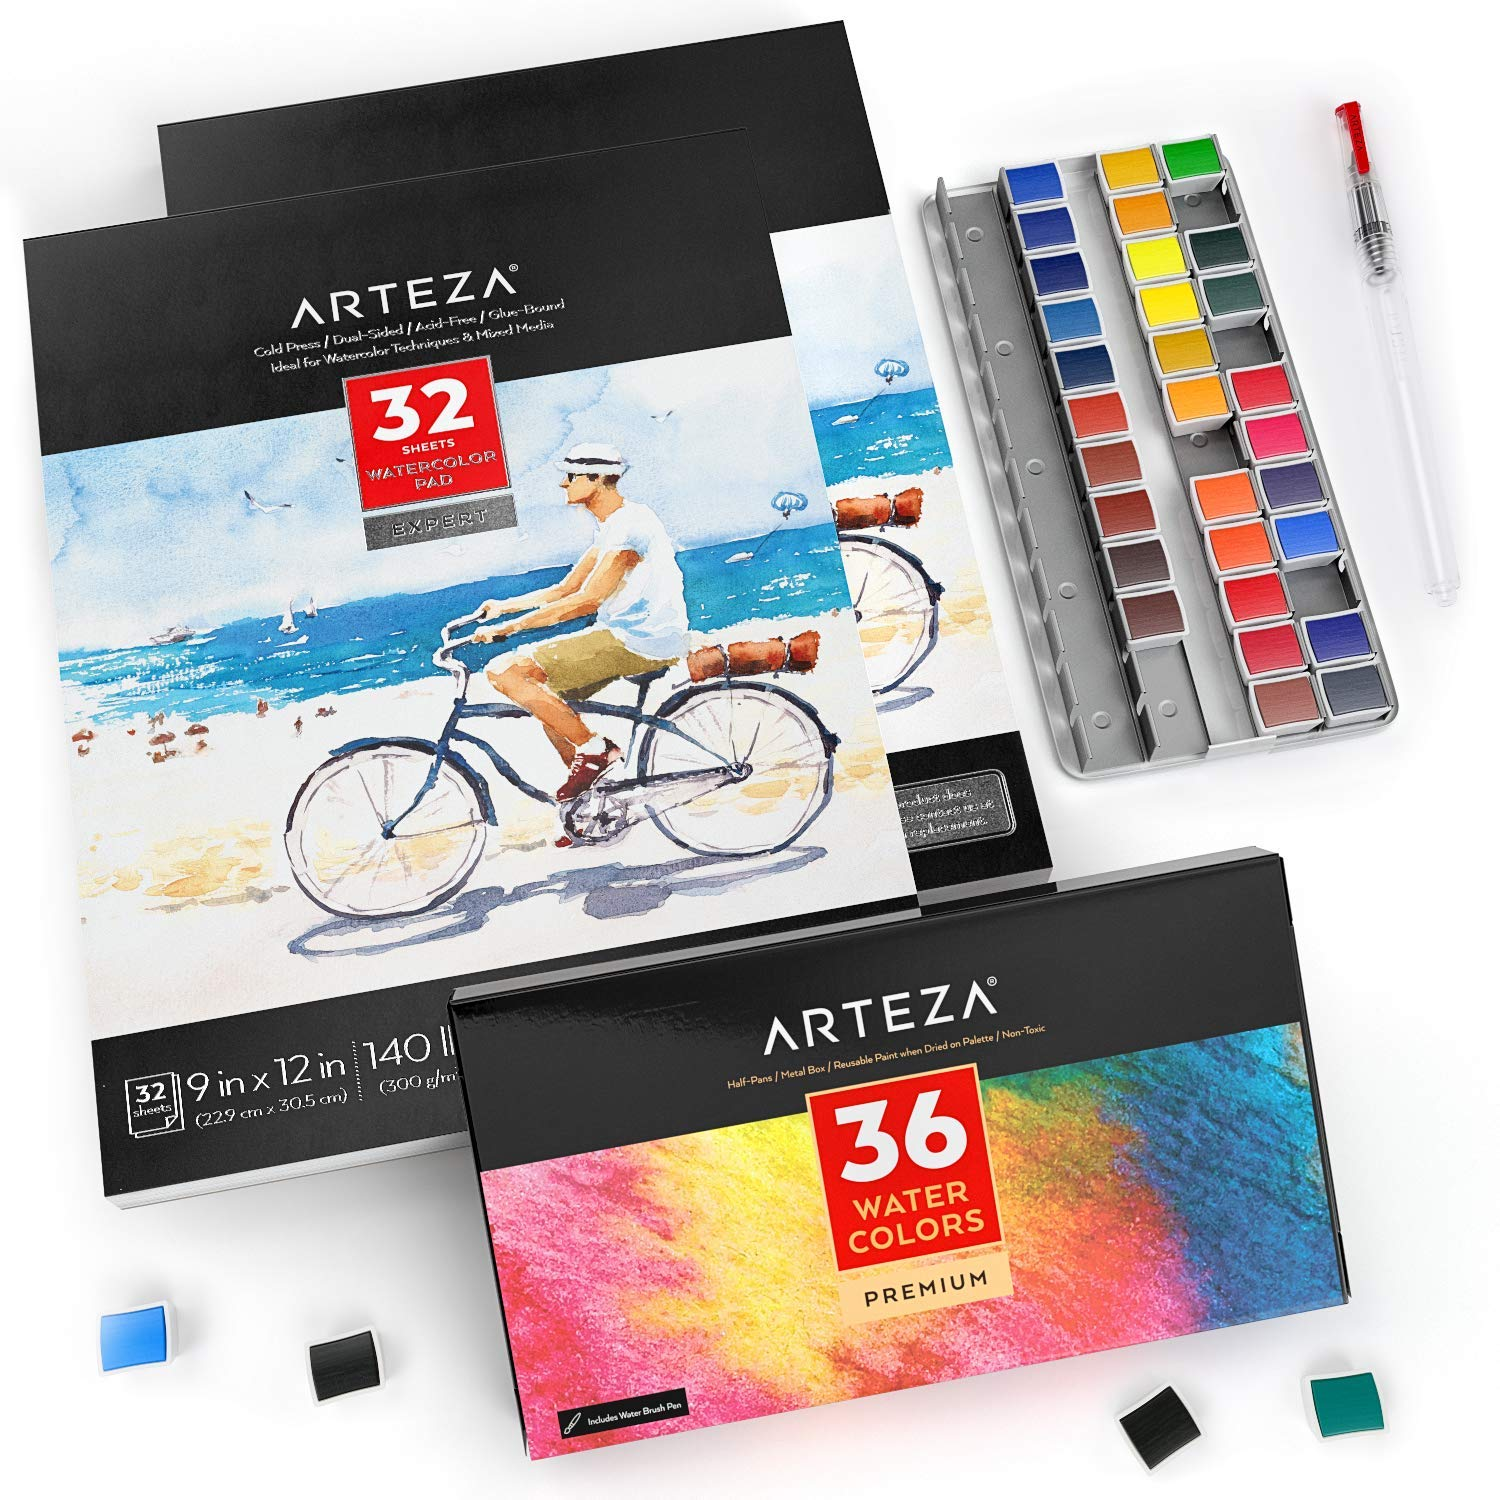 Arteza Watercolor Art Kit, 36 Watercolor Half Pans & 2 Expert Watercolor Pads, 9x12-inch, 32-Sheets Each for Professional Artists, Students, Beginners by ARTEZA